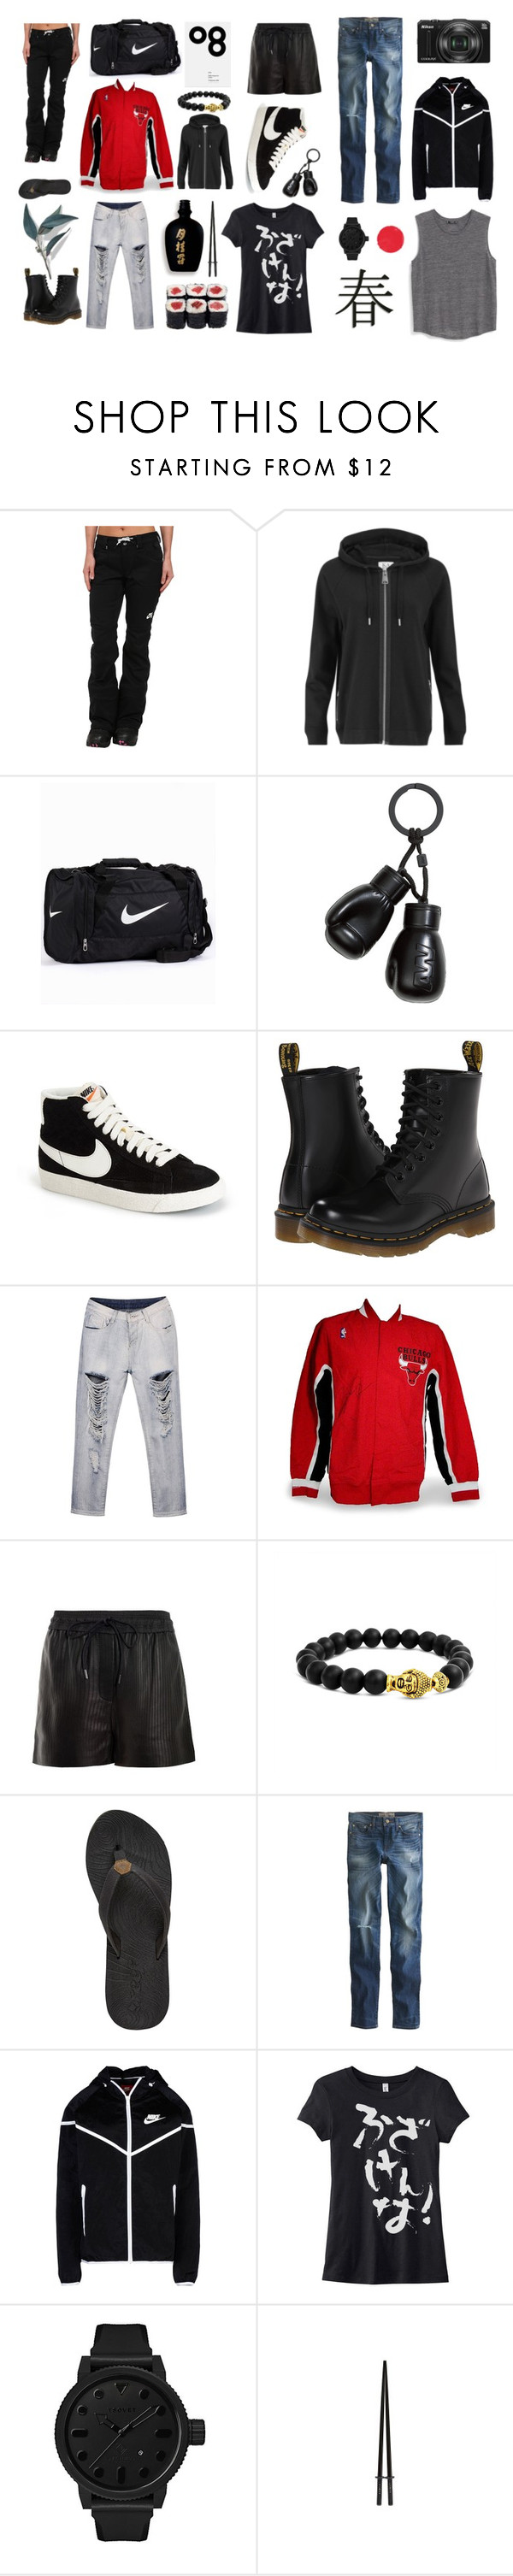 """Aito Yukimura 「幸村 愛人」"" by laura-laakkonen ❤ liked on Polyvore featuring NIKE, Zoe Karssen, H&M, Dr. Martens, Steiner Sports, Alexander Wang, Acne Studios, Bling Jewelry, Reef and Point Sur"